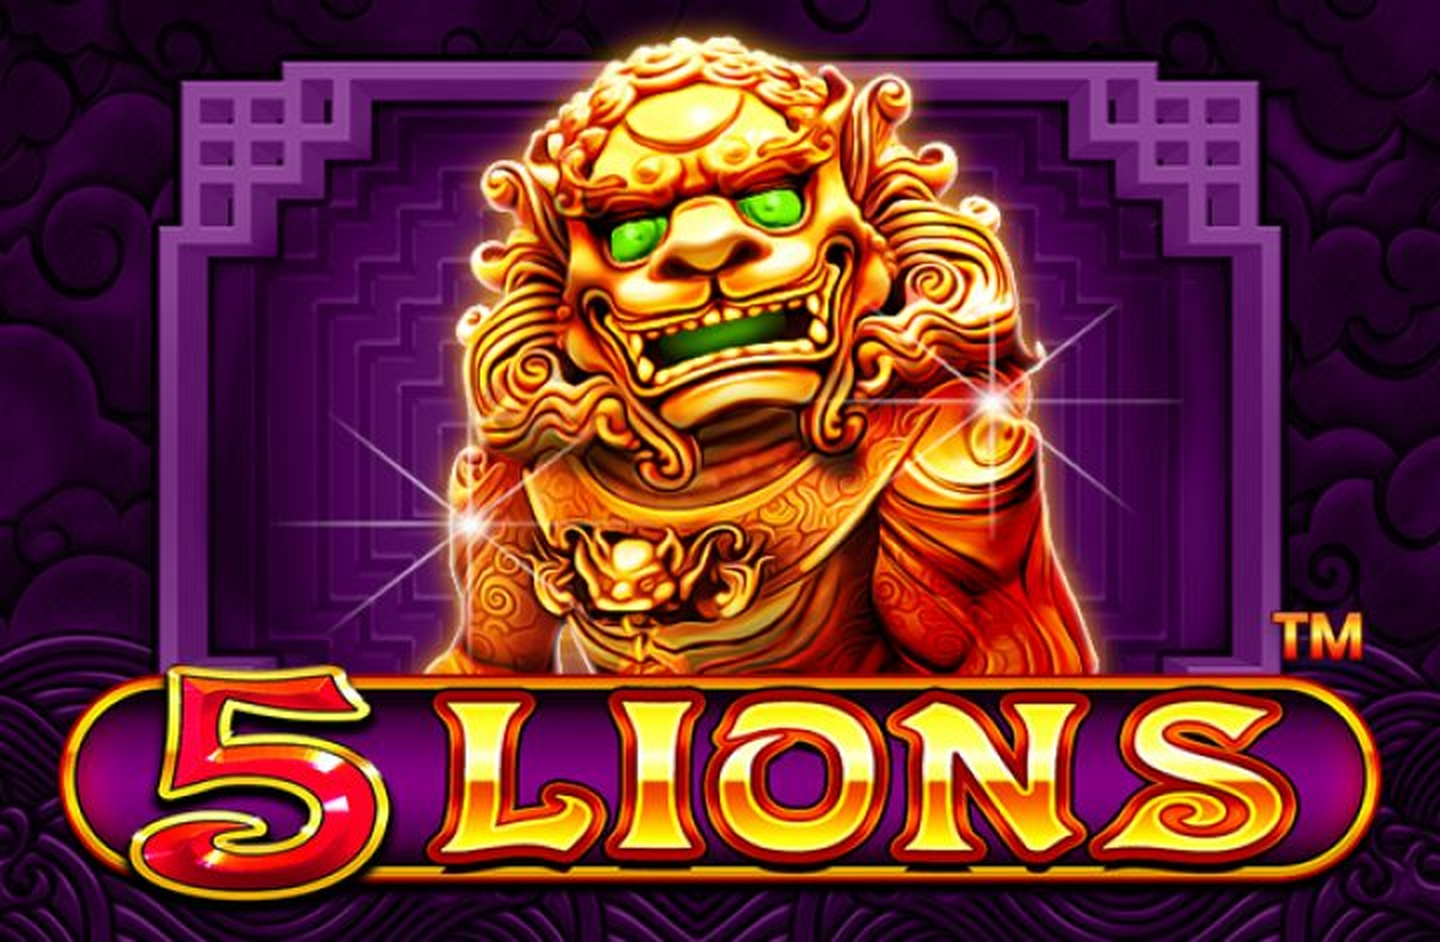 The 5 Lions Online Slot Demo Game by Pragmatic Play